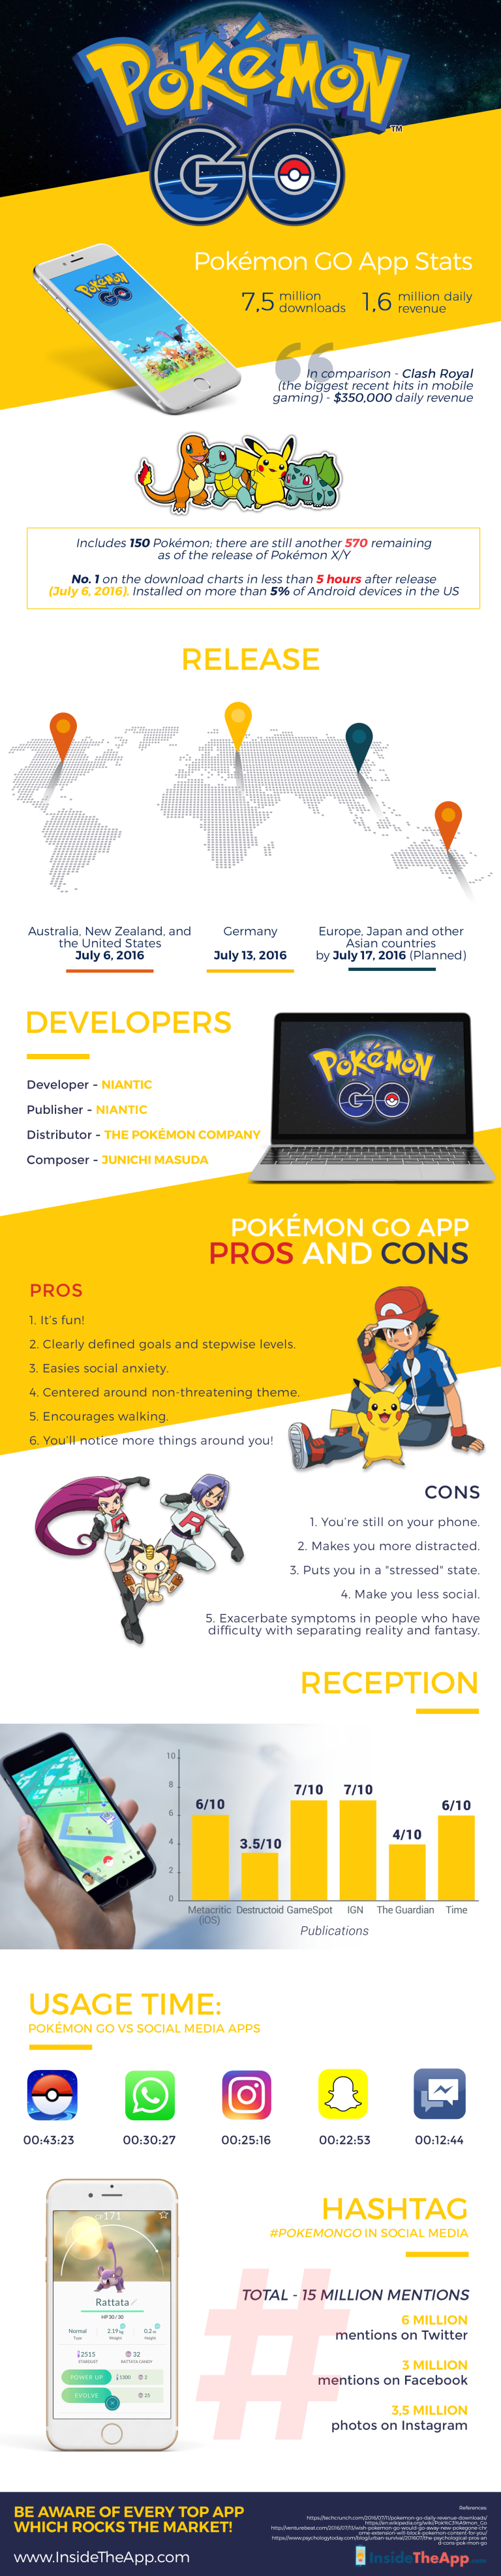 Pokemon GO – More Than Just A Game - Infographic